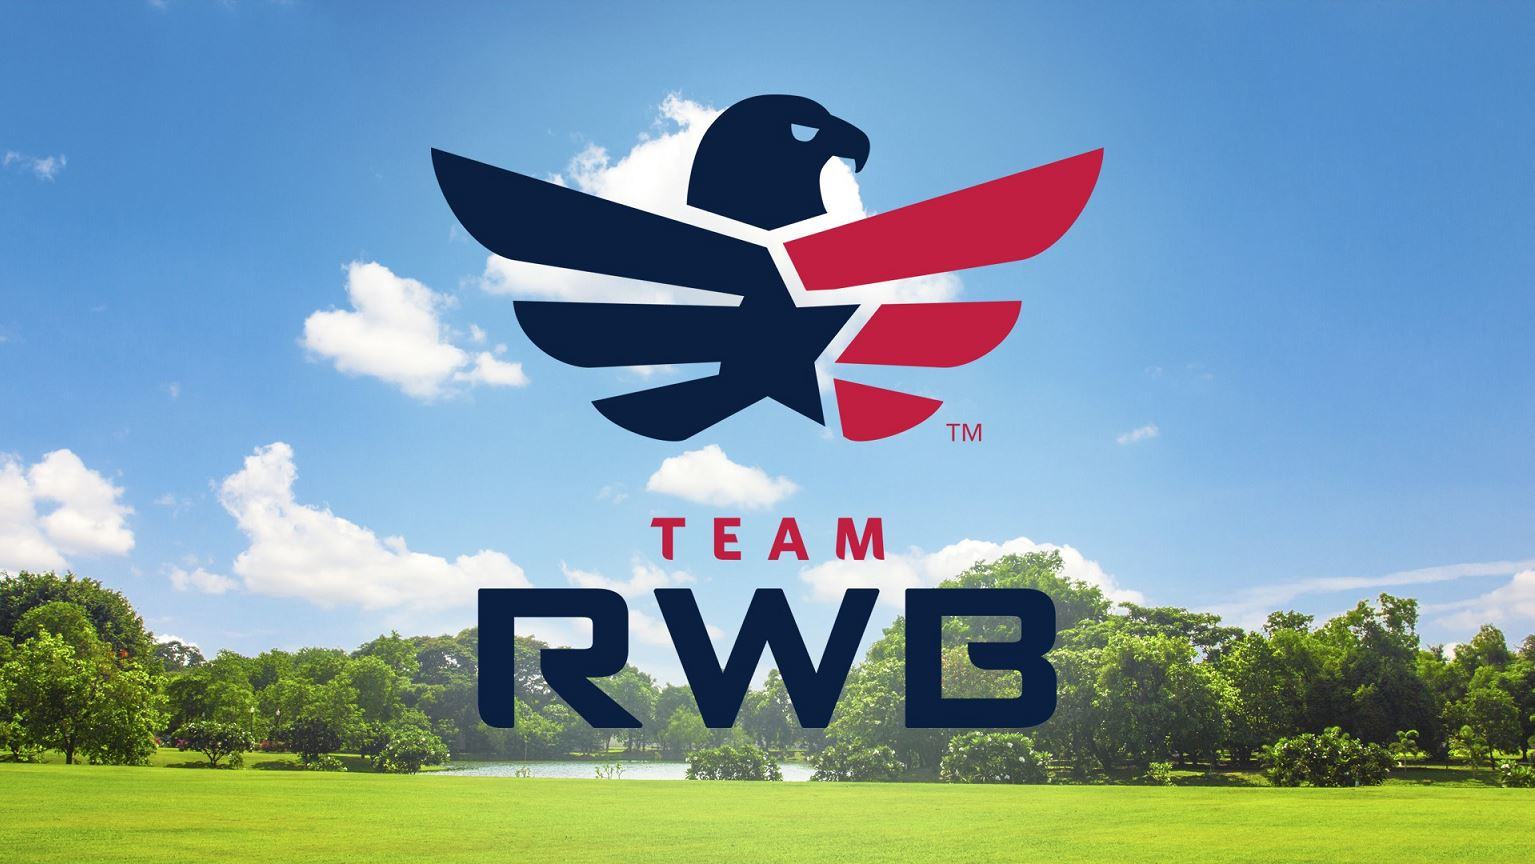 TEAM RWB - Enriching Veterans Lives Through Social and Physical Activities